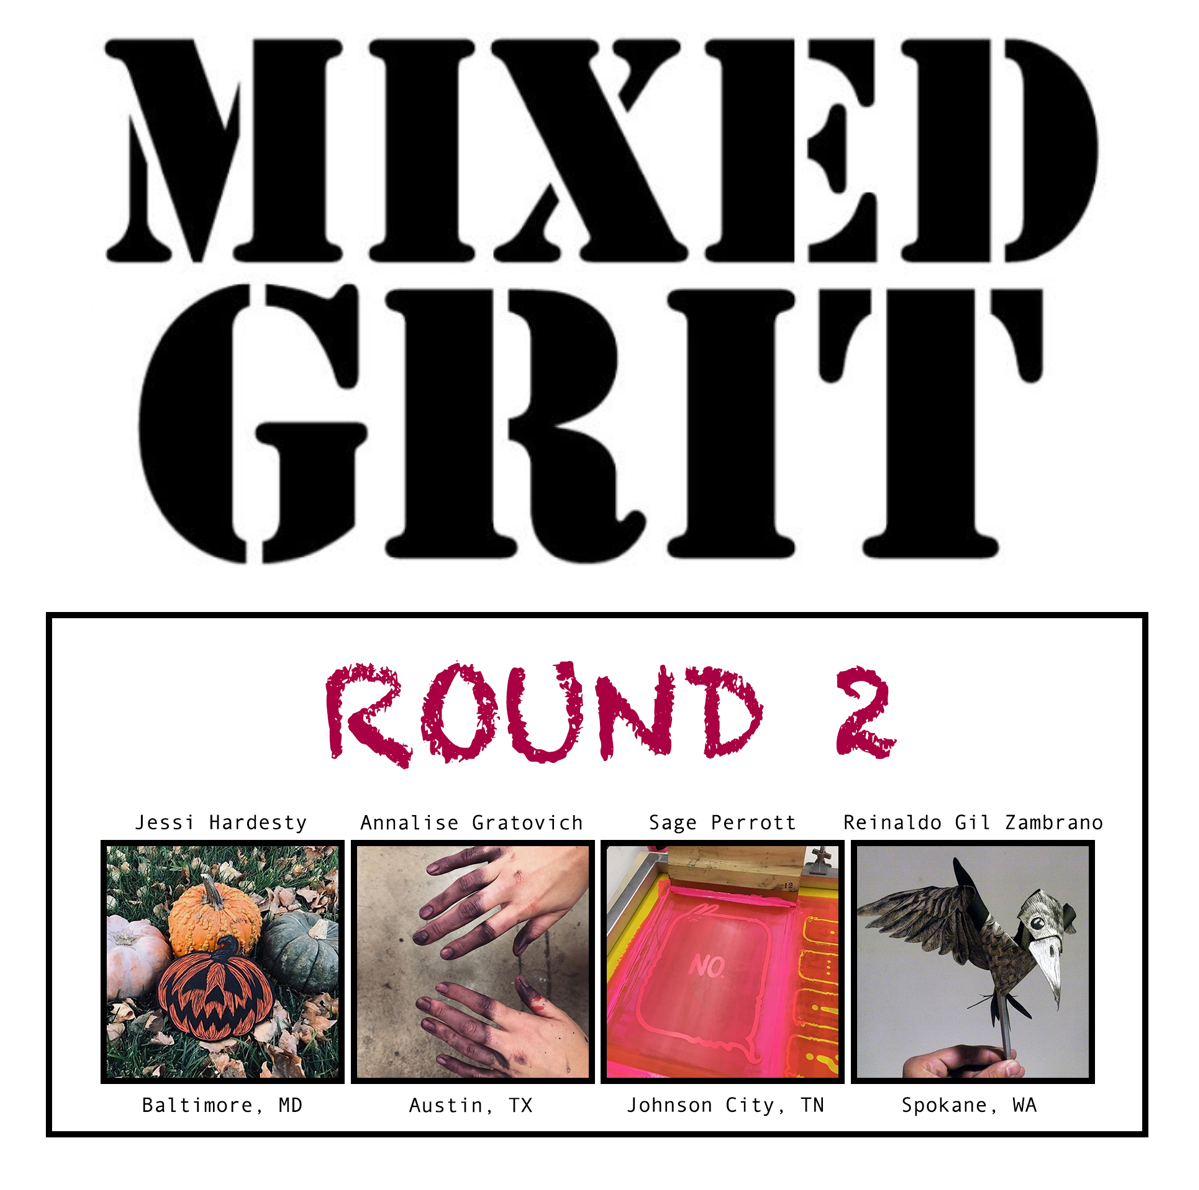 New Publication with Gregory Santos's Mixed Grit